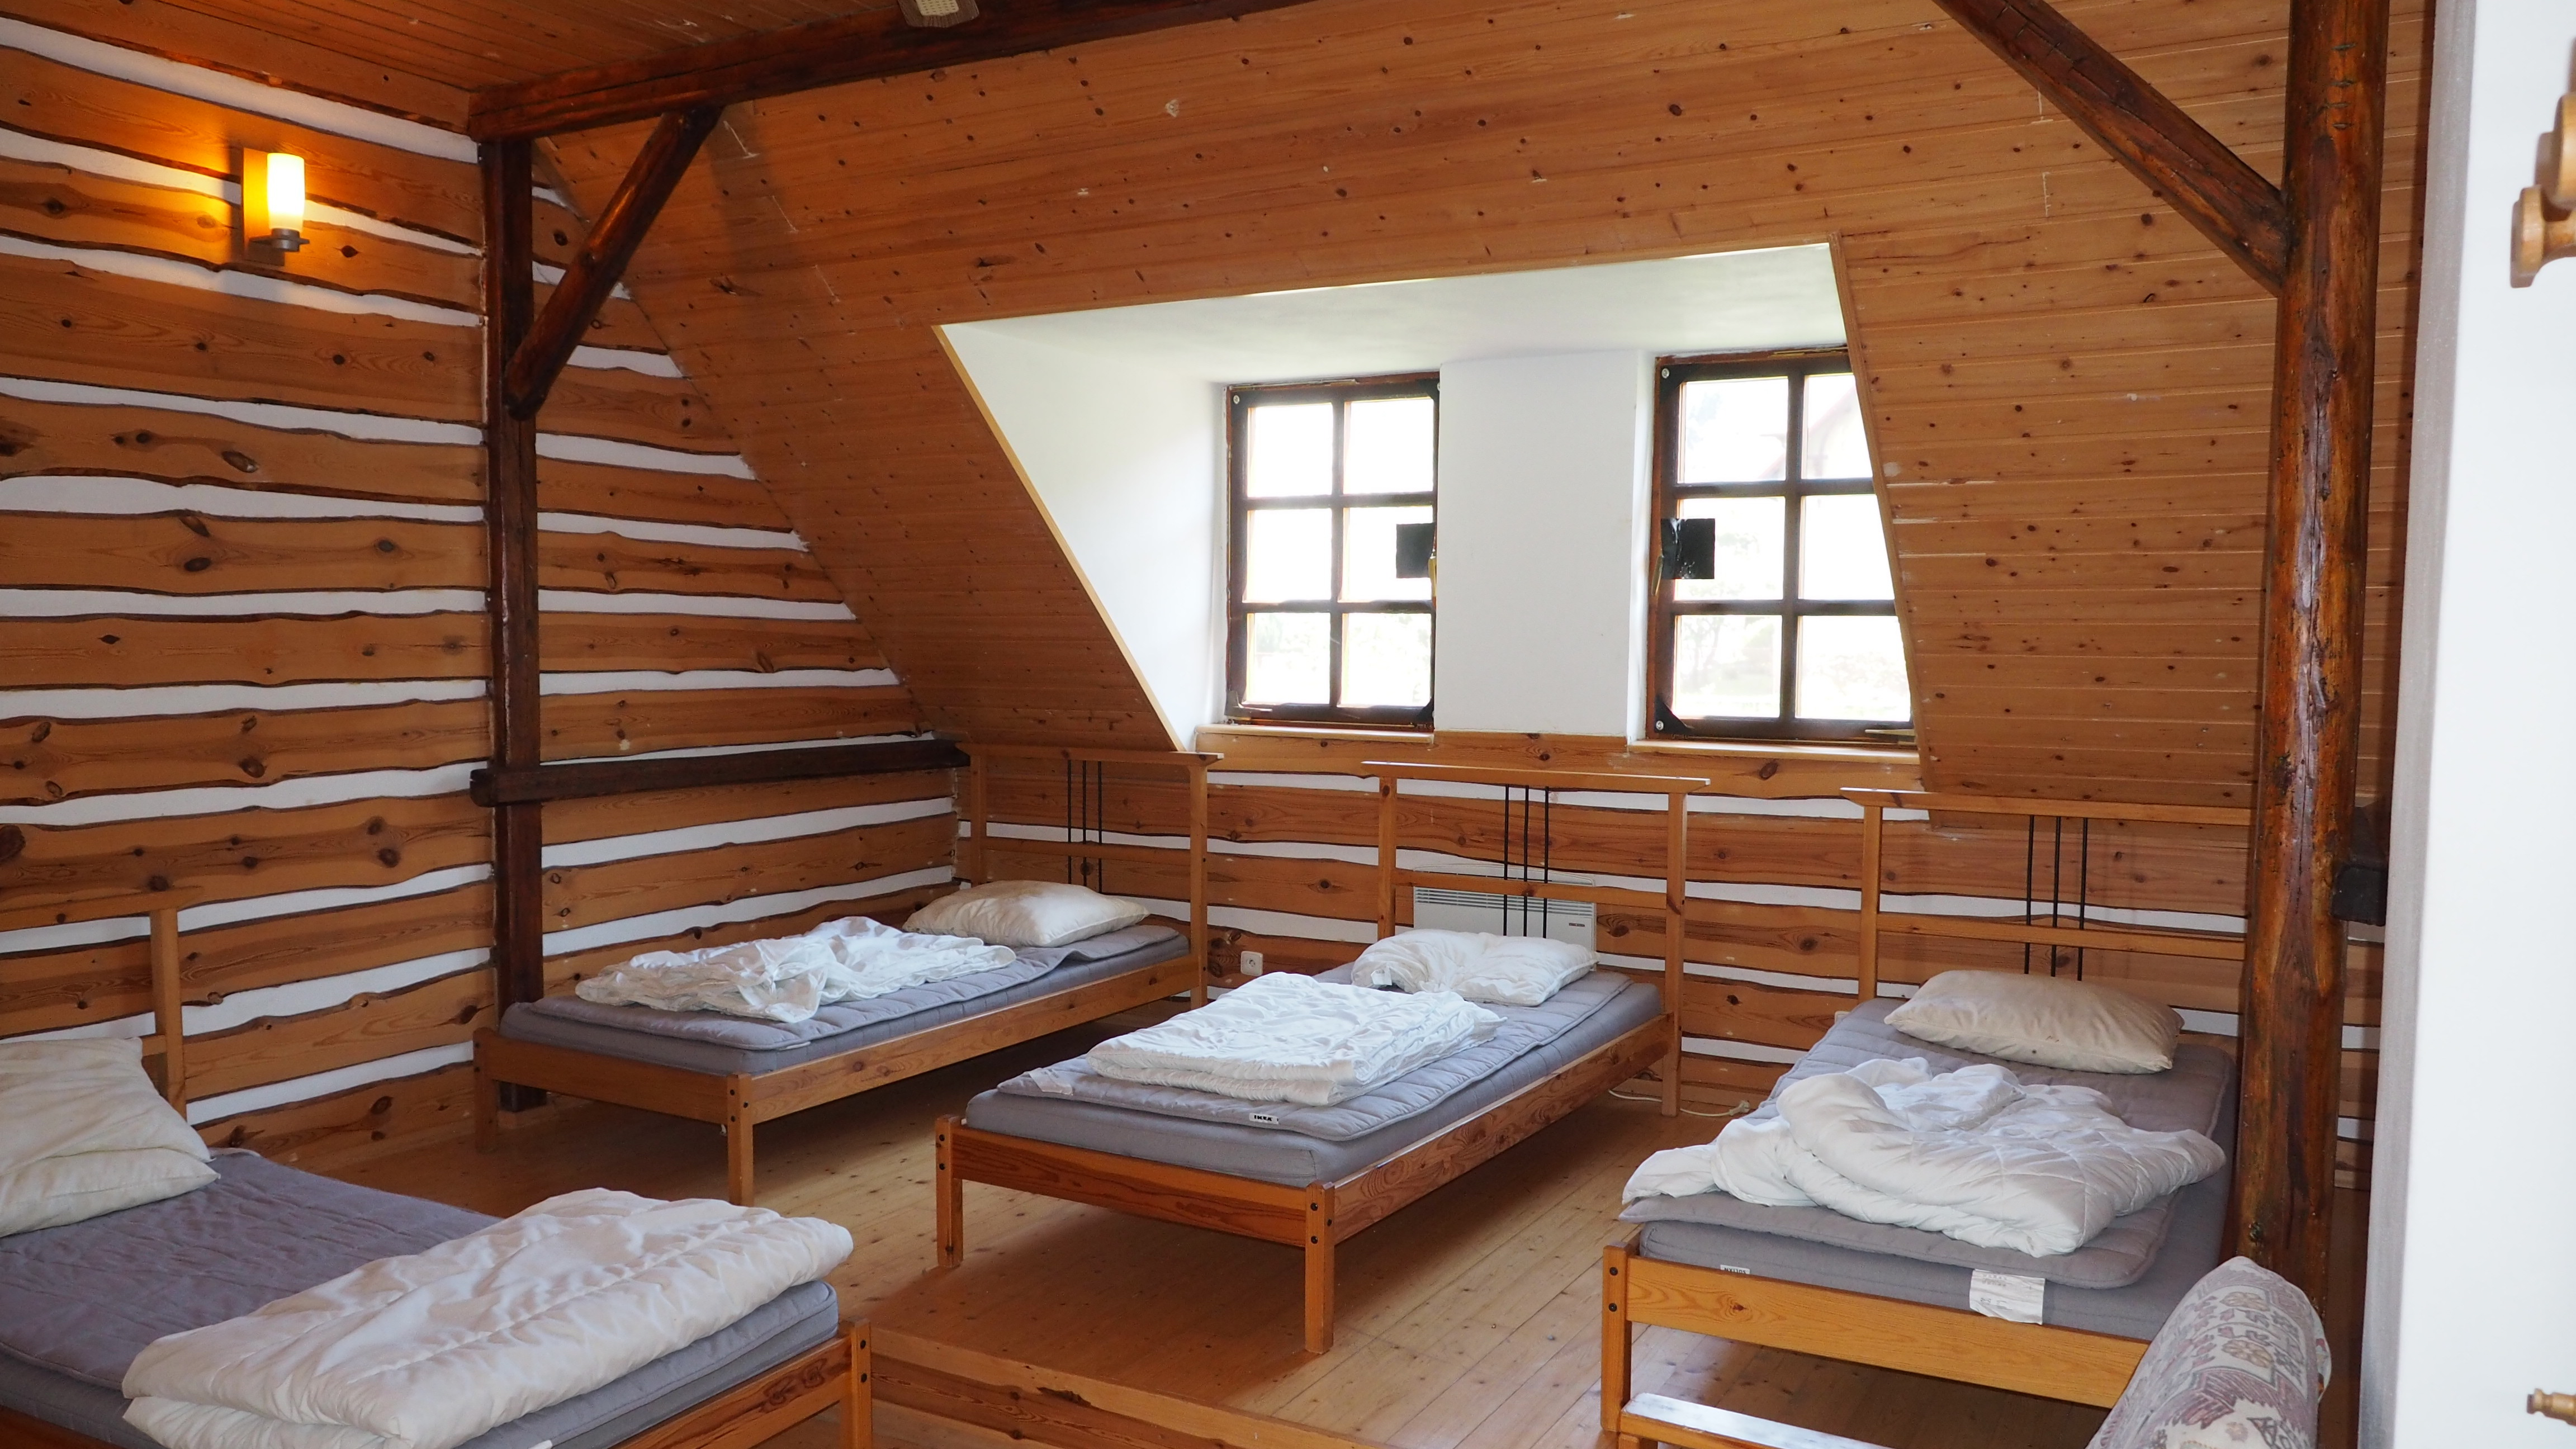 Fourbedded-room-kopretina